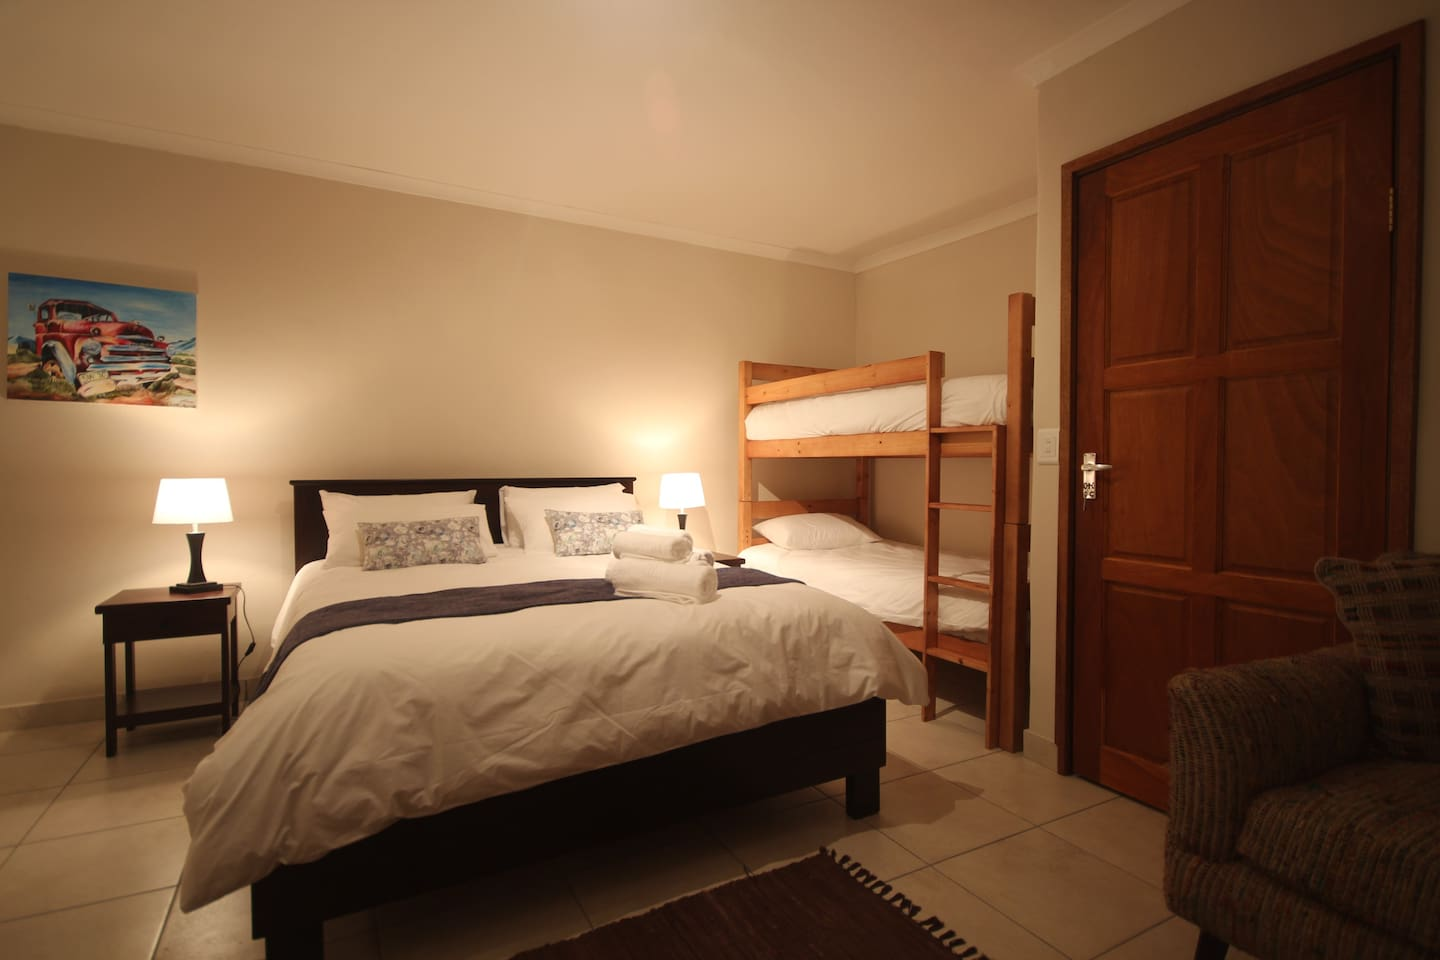 Unit 3 - Queen size and bunkbed